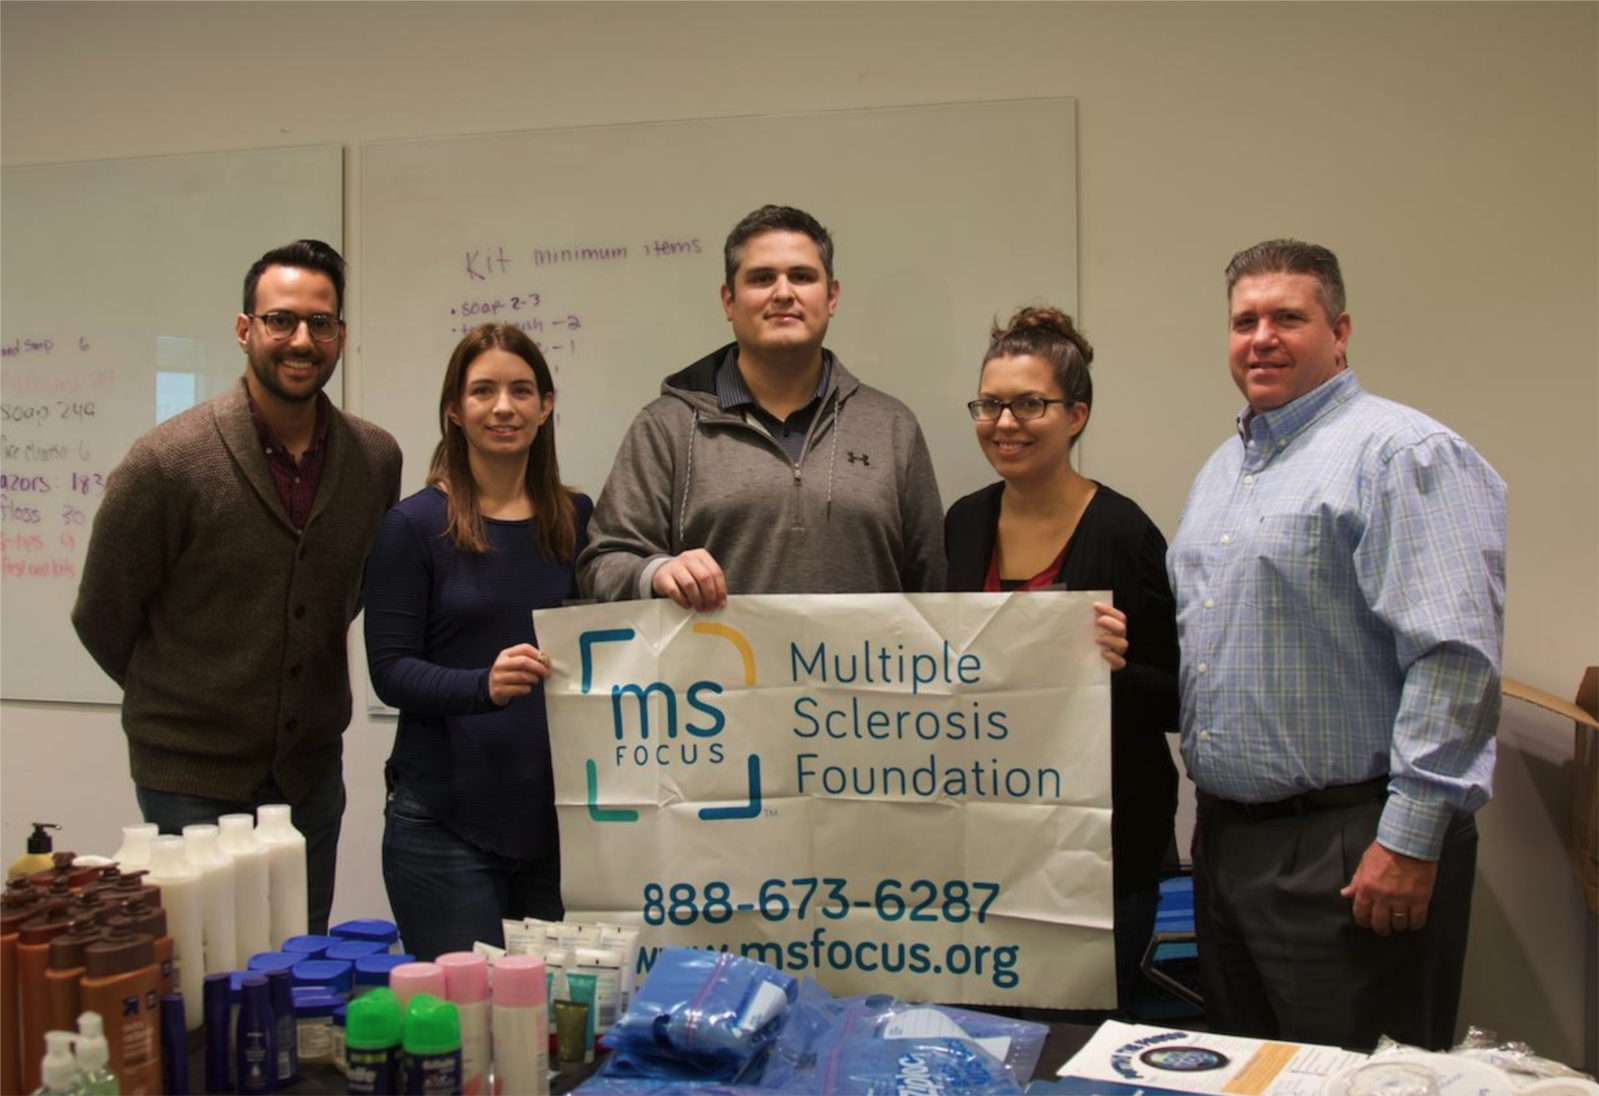 As part of Tenable's We Care in Action initiative, employees purchased and put together care packages to donate to the Multiple Sclerosis Foundation. Tenable selected the MS Foundation as our global charitable cause. Tenable also partners with several other local charities around their global offices.